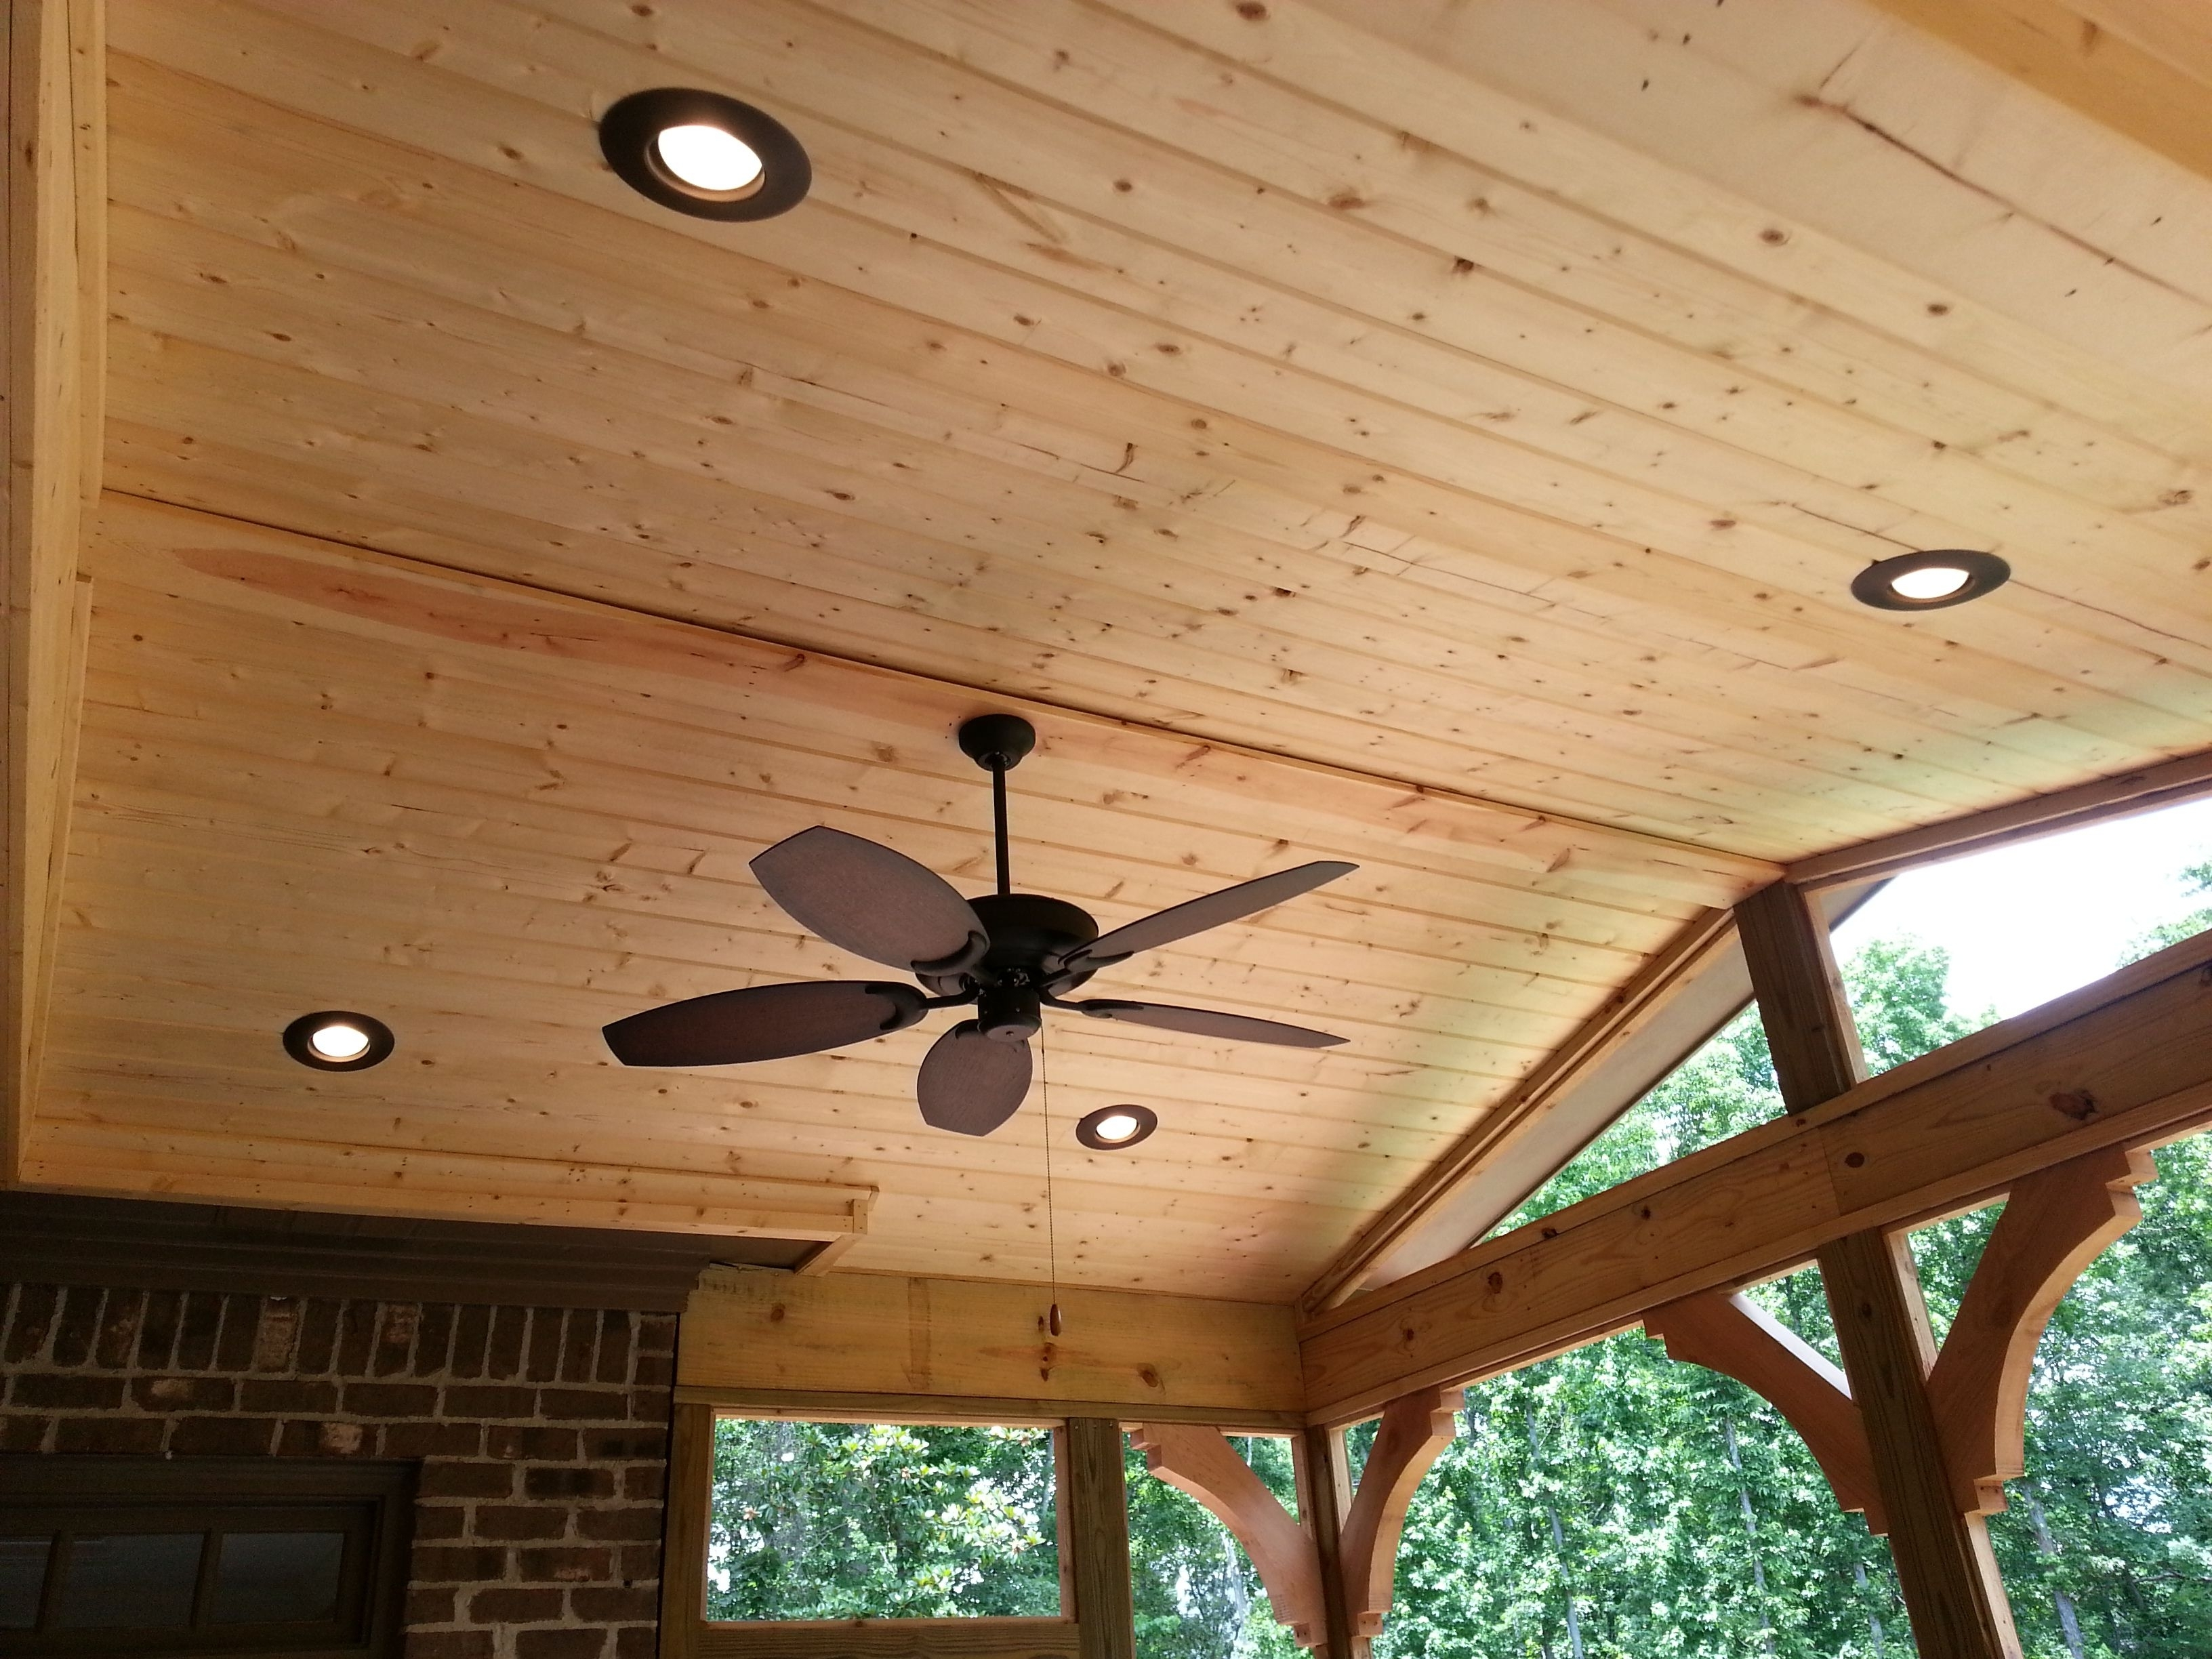 Outdoor Ceiling Fans For Screened Porches Pertaining To 2018 Finished Ceiling With Ceiling Fan And Can Lights – Design Ideas (View 12 of 20)